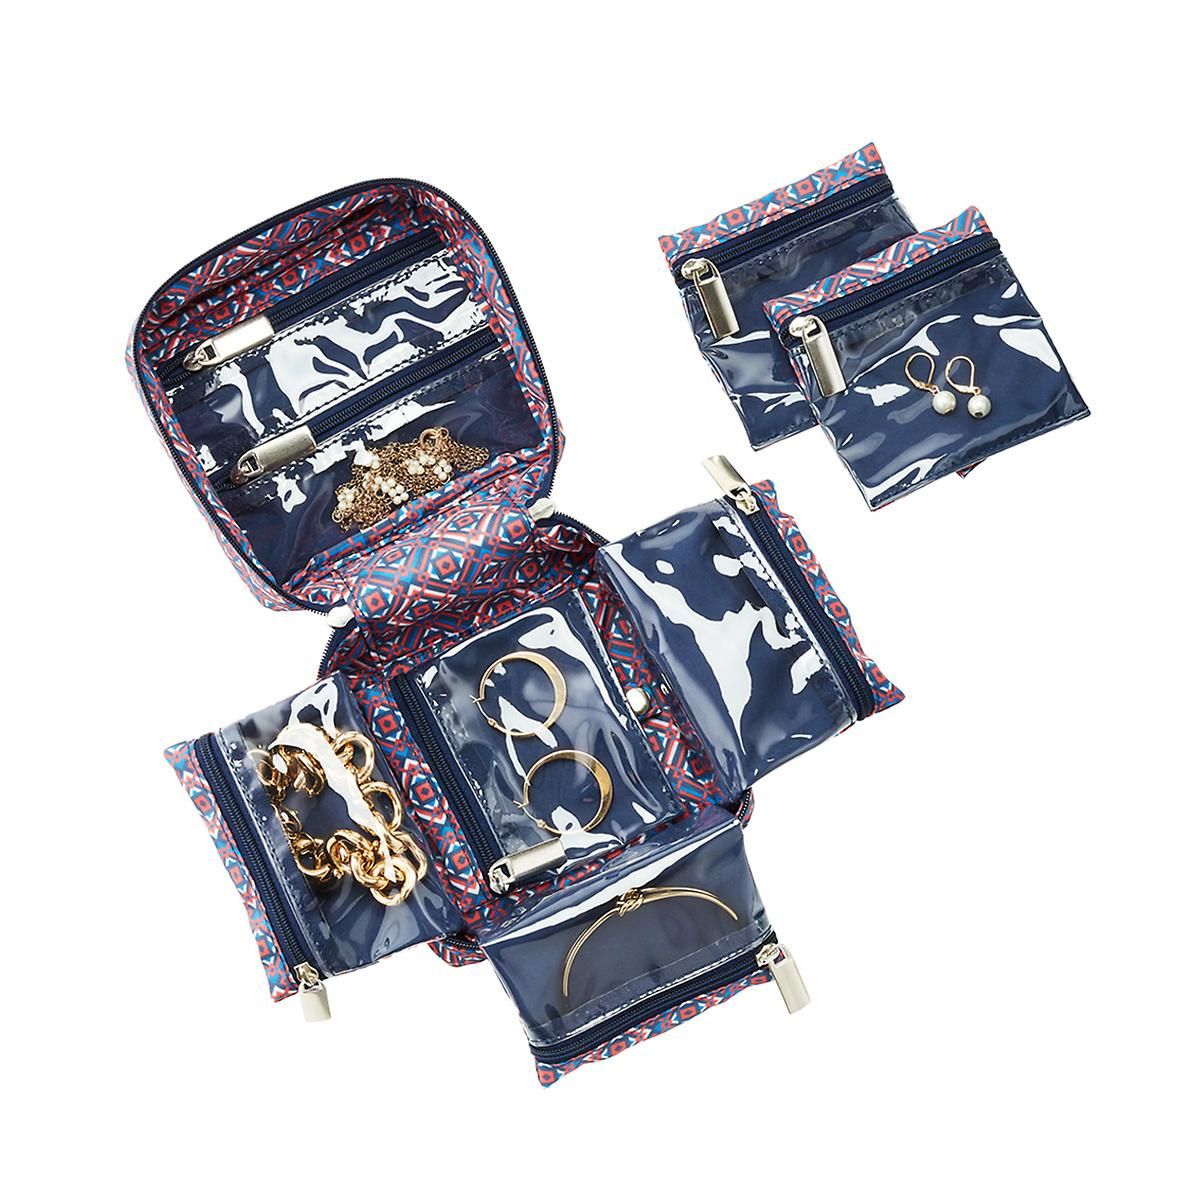 in.bag Blue Tile Travel Jewelry Organizer